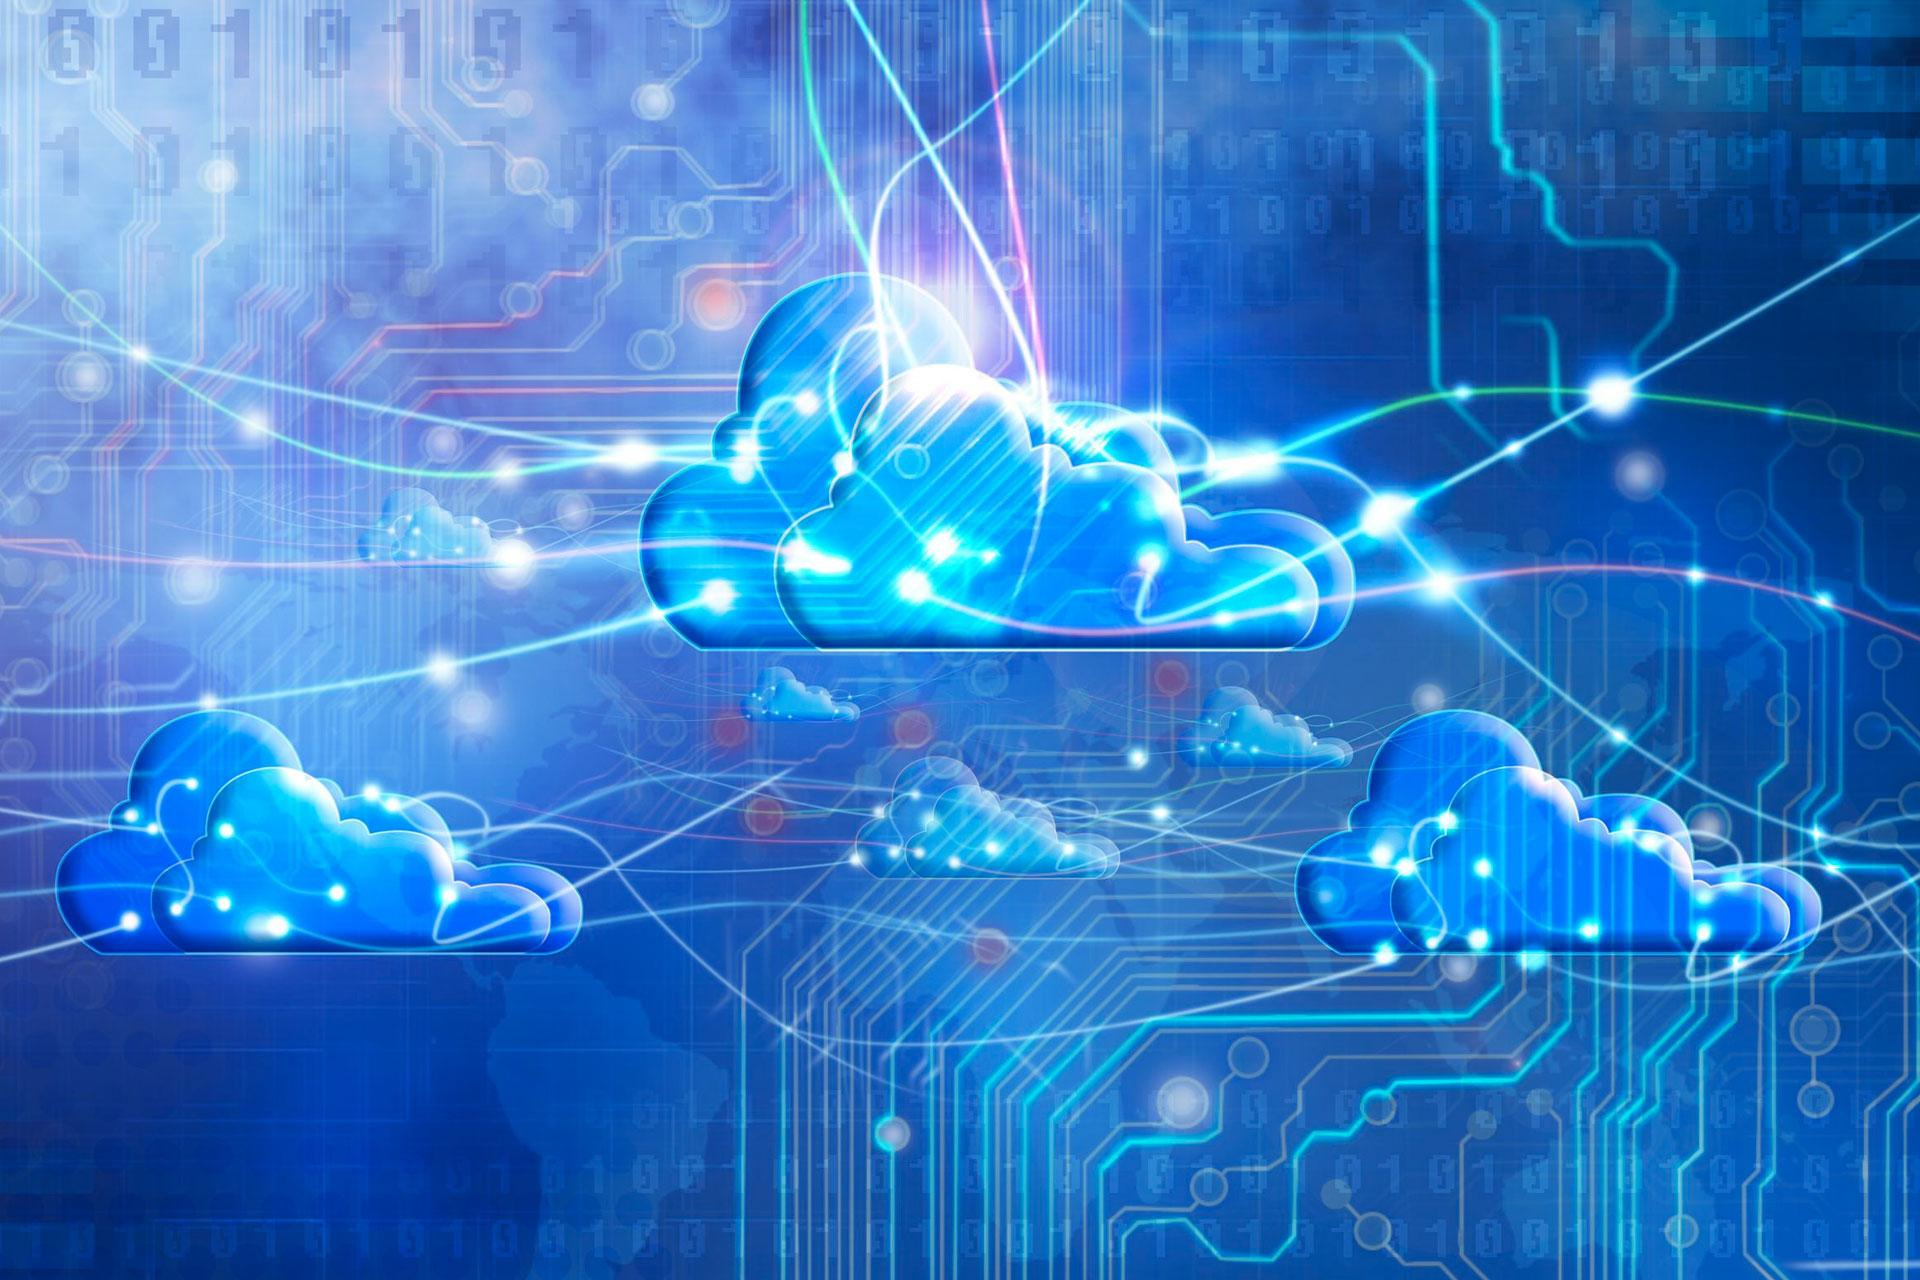 6 Reasons Why Cloud Data Storage Works for Small Businesses